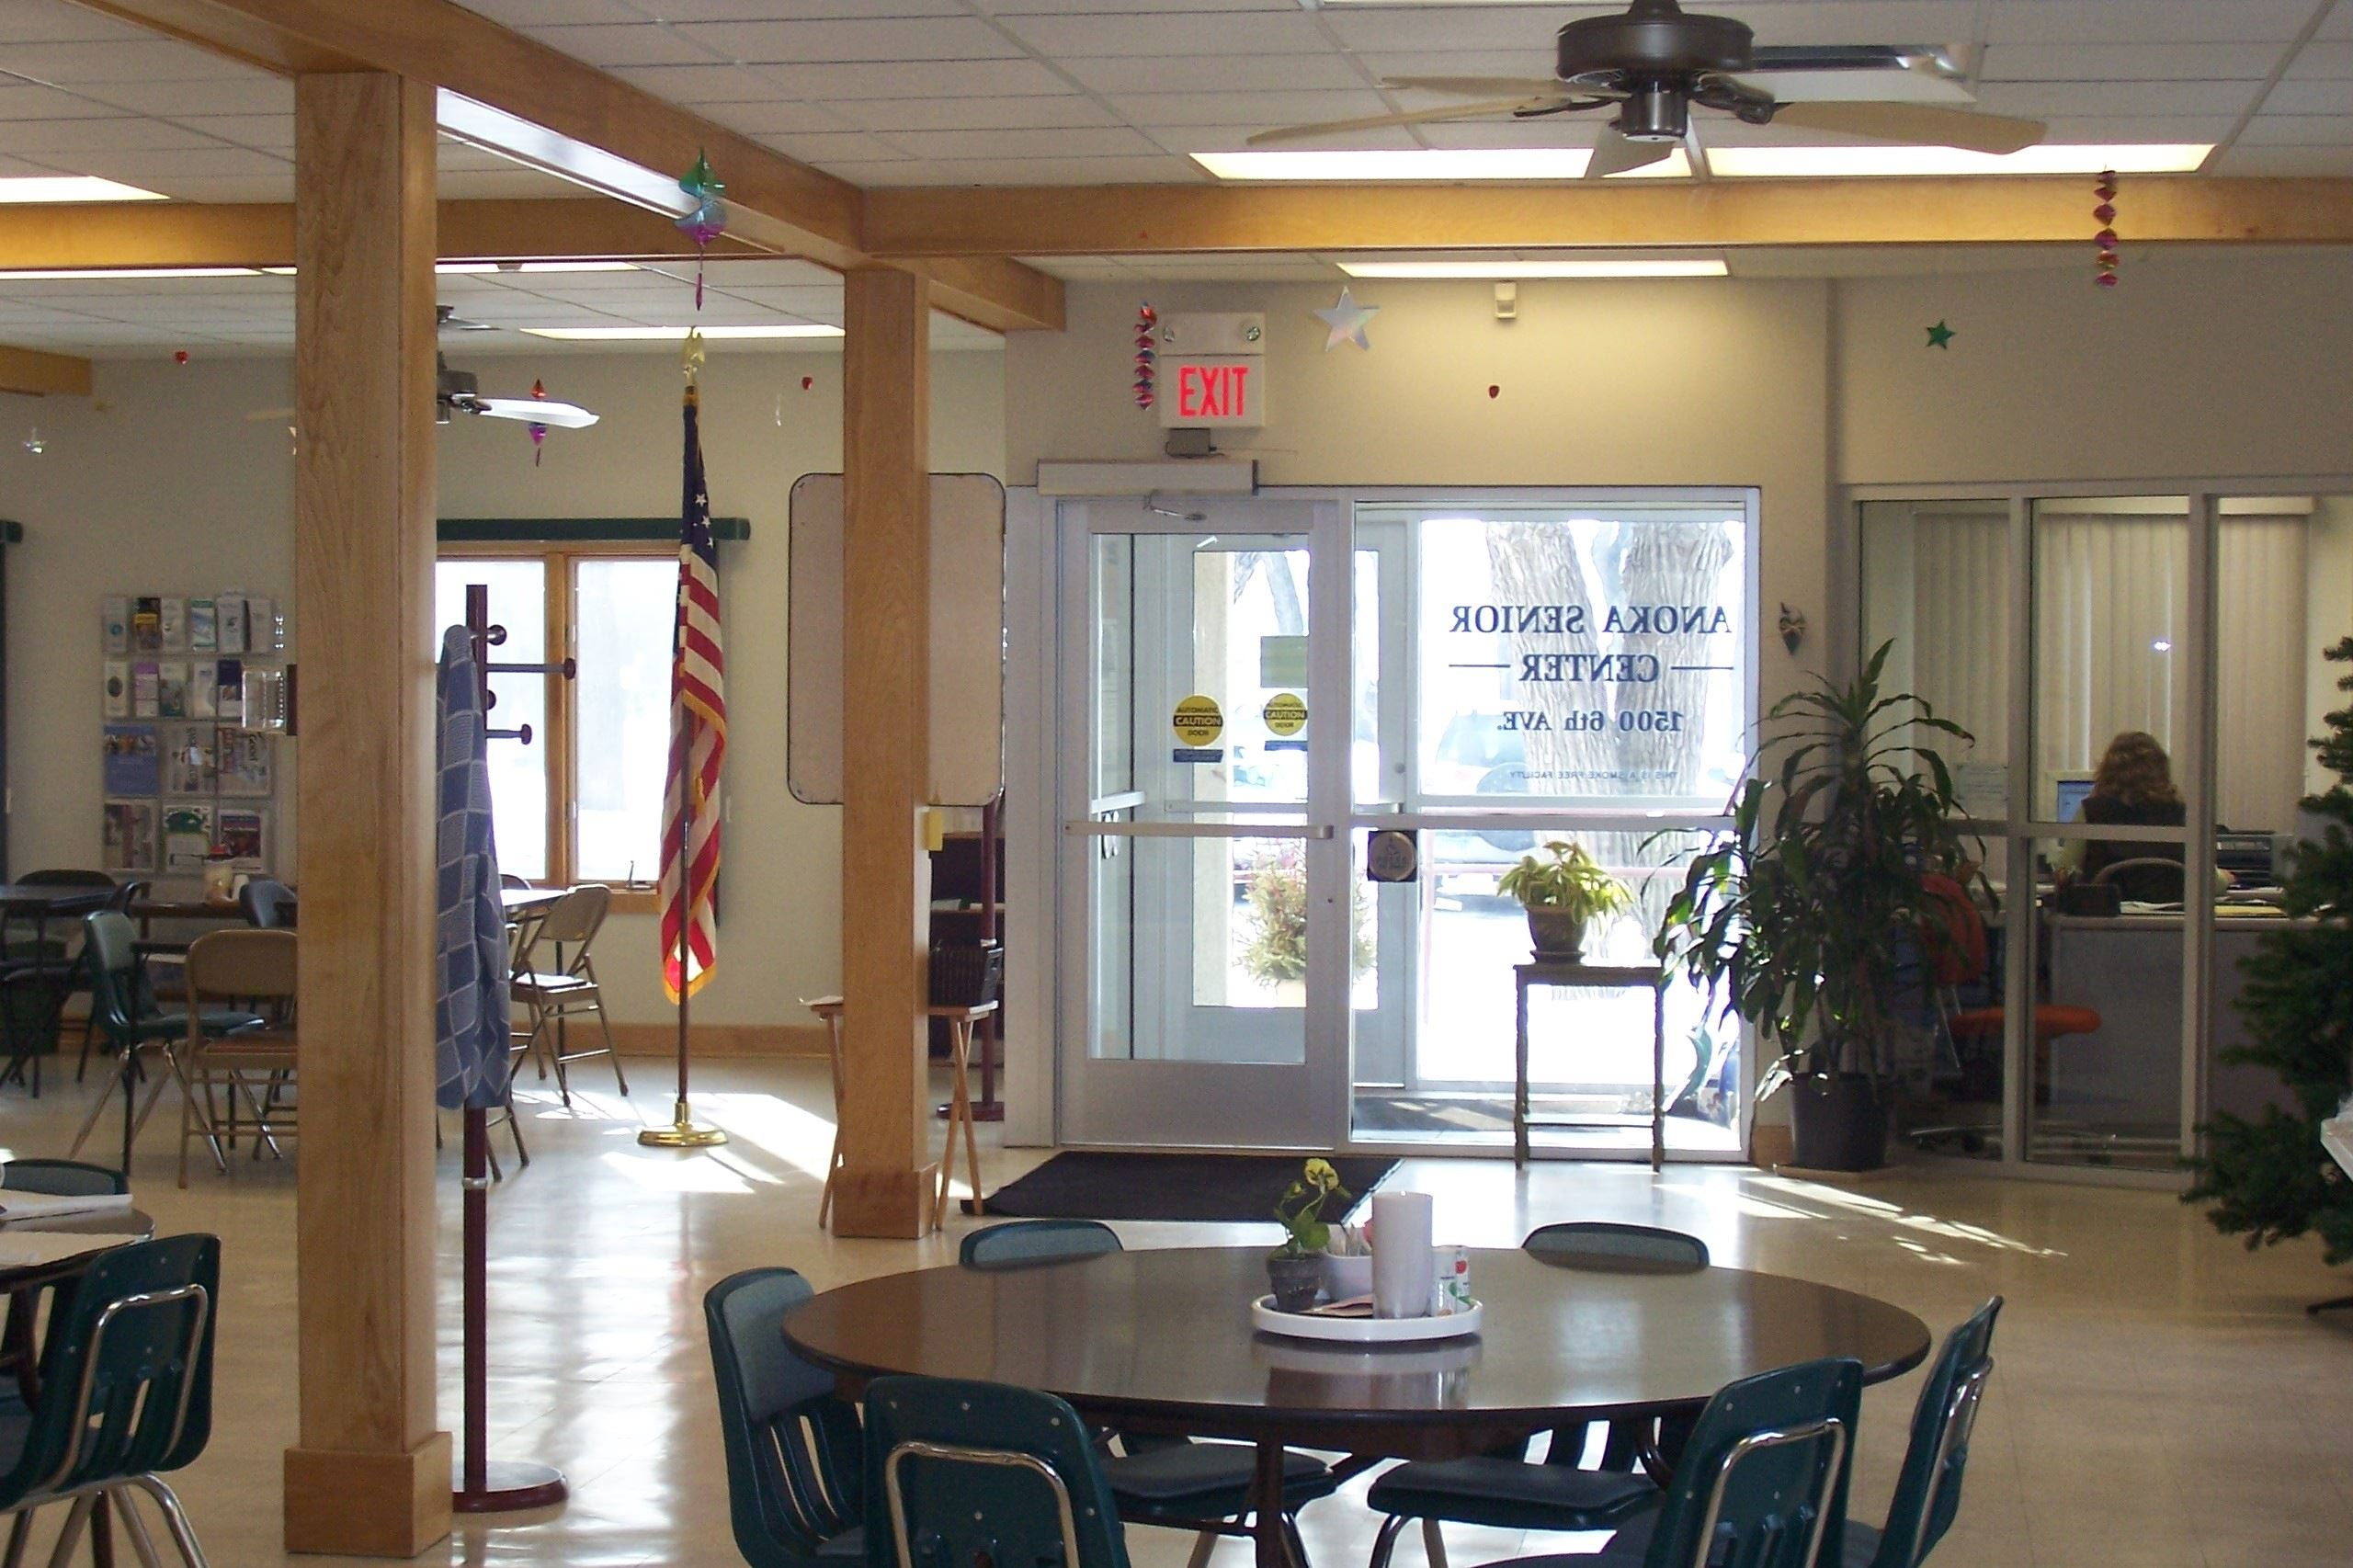 Interior of Senior Center